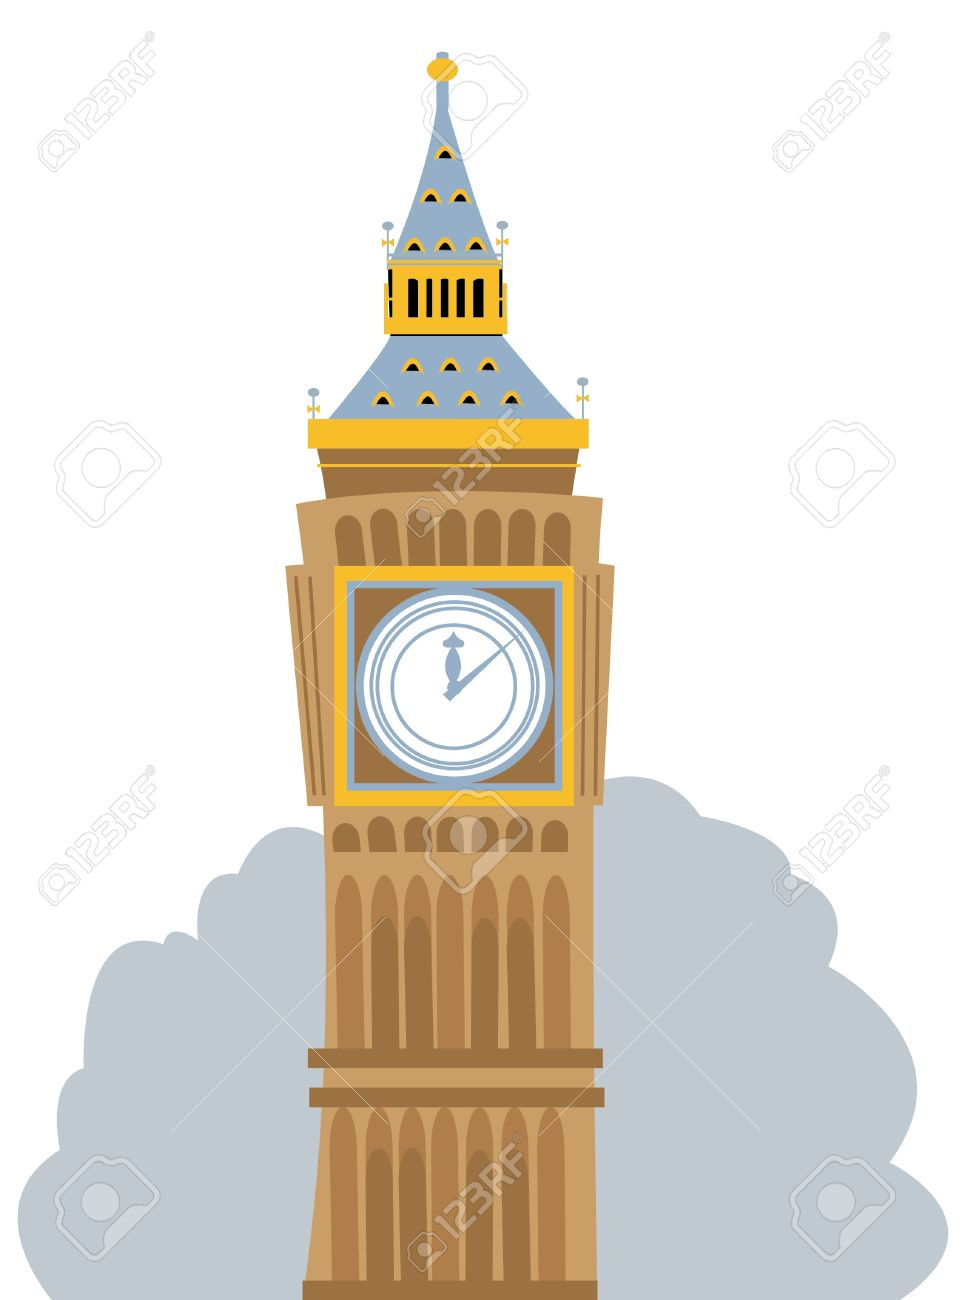 Big ben clipart 20 free Cliparts | Download images on ...